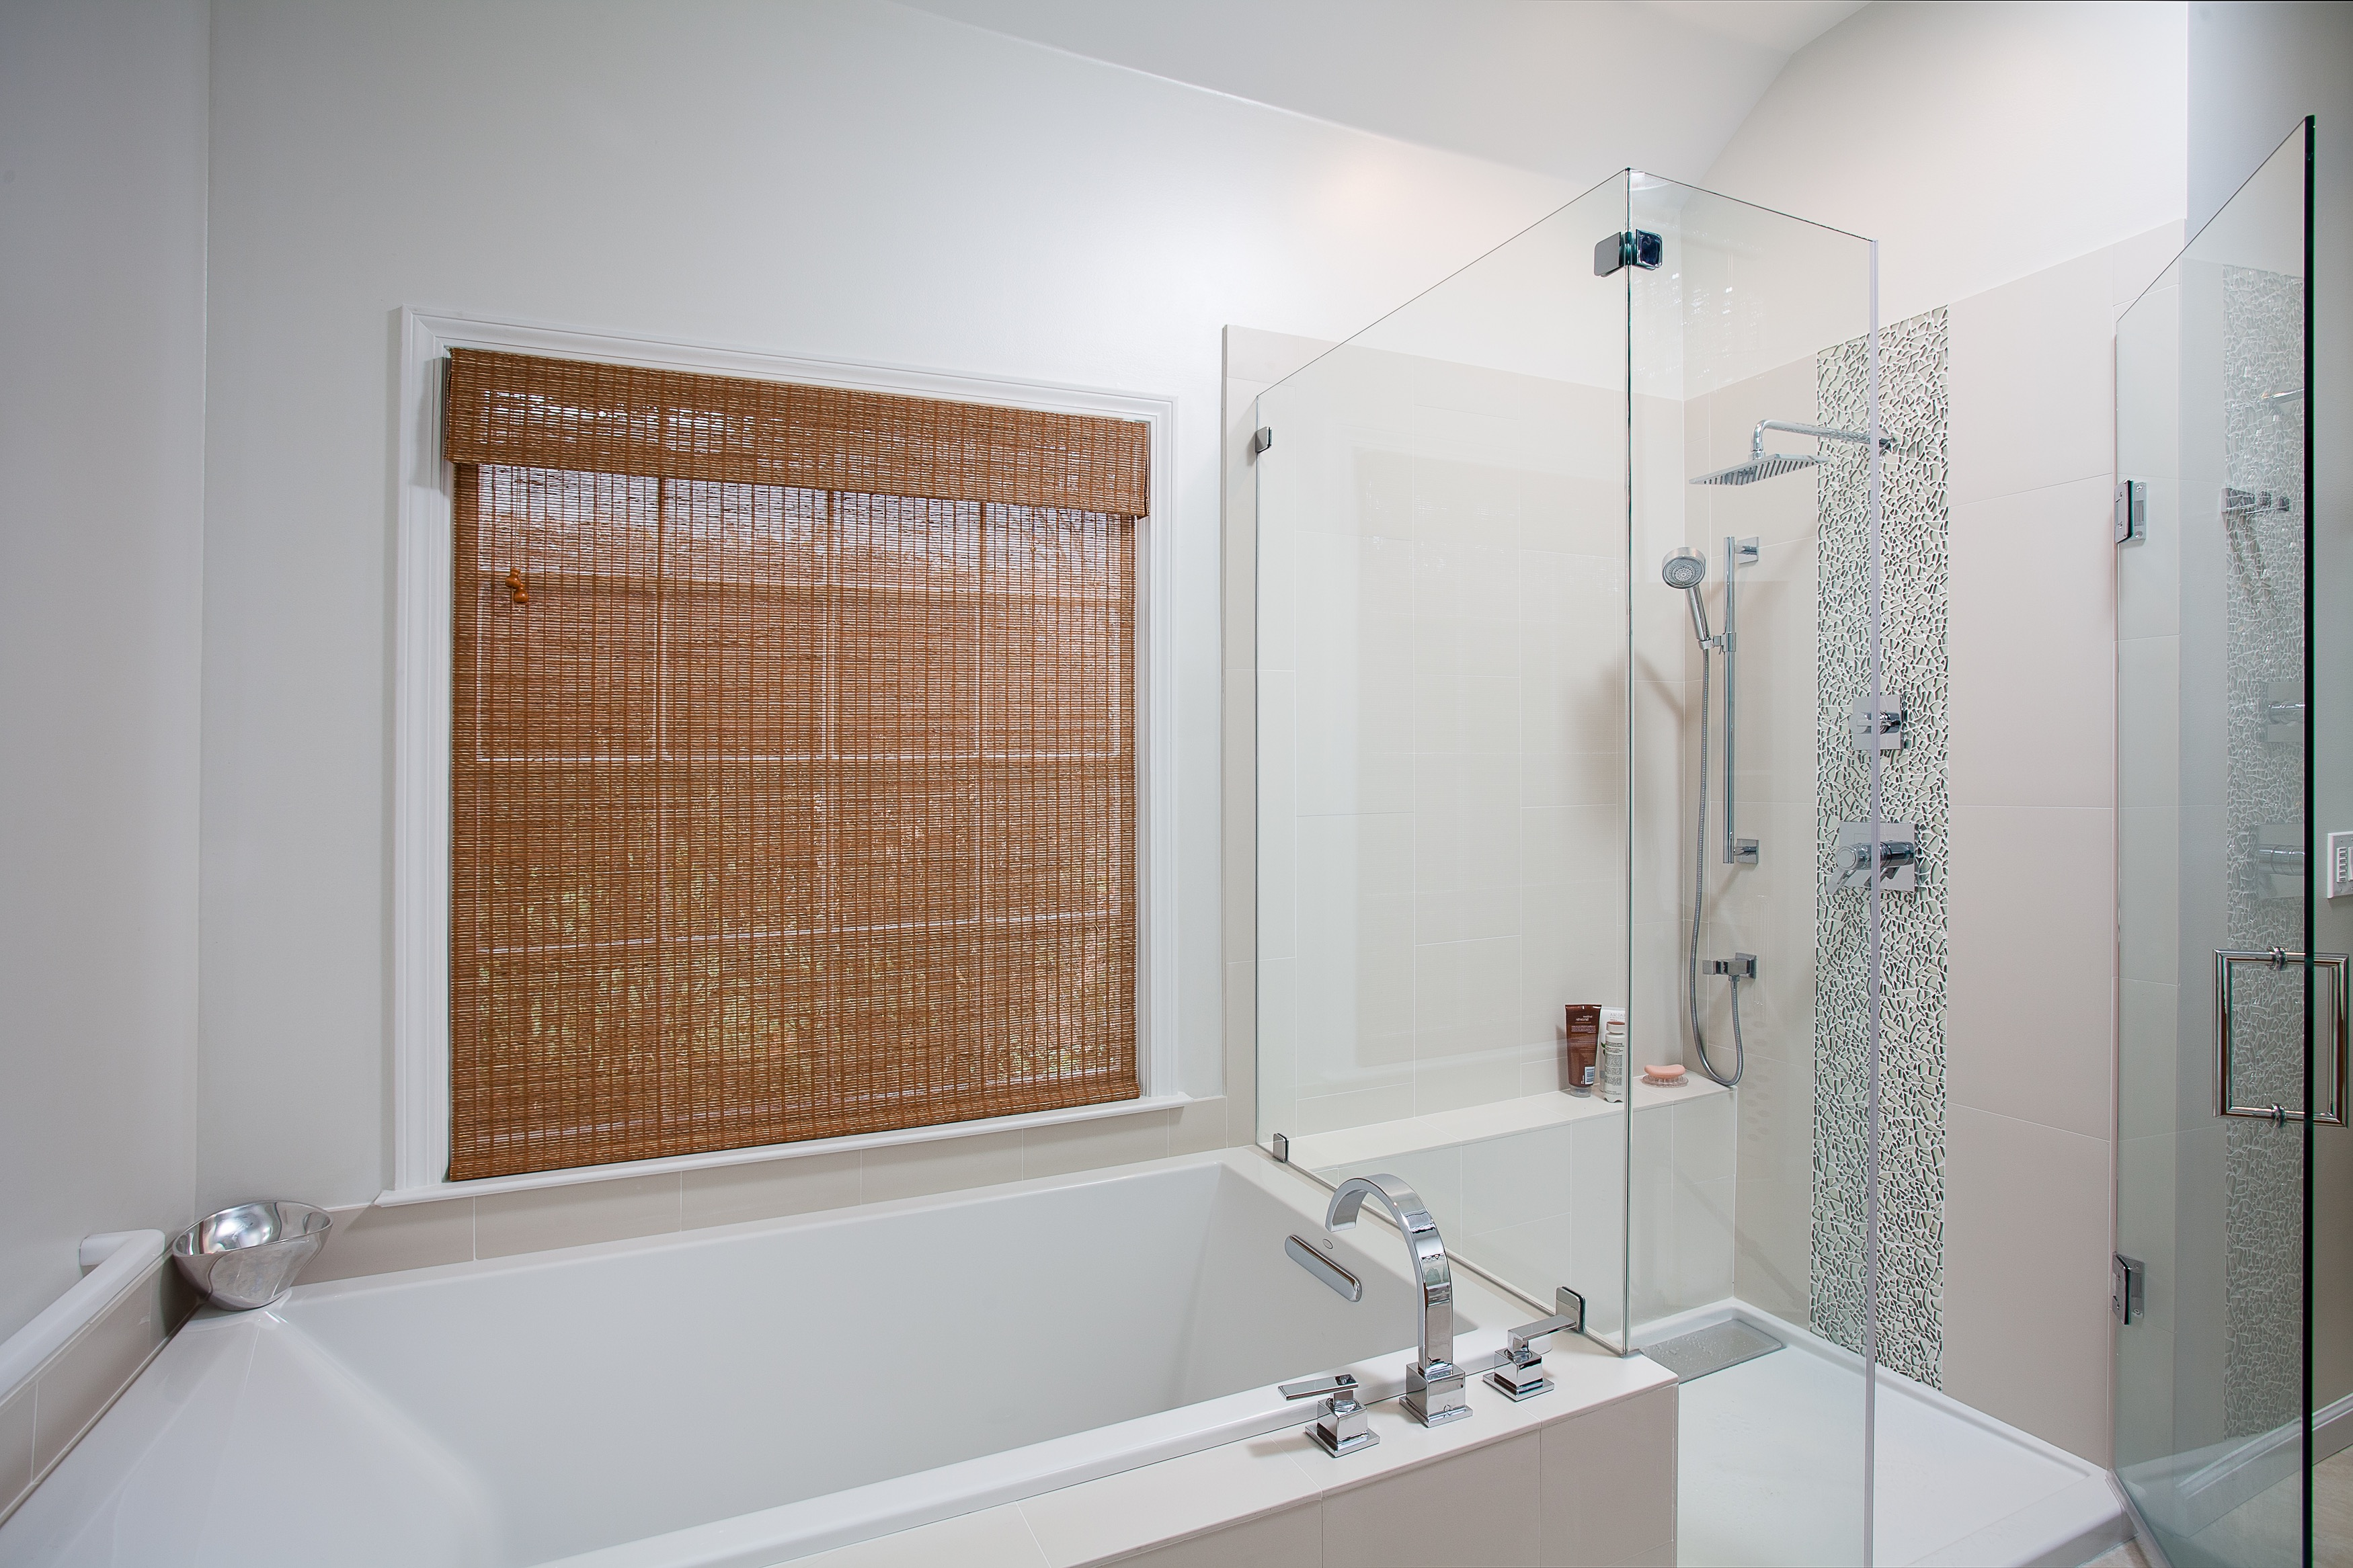 Contemporary White Bathroom With Tub And Glass Enclosed Shower Combo (View 6 of 19)